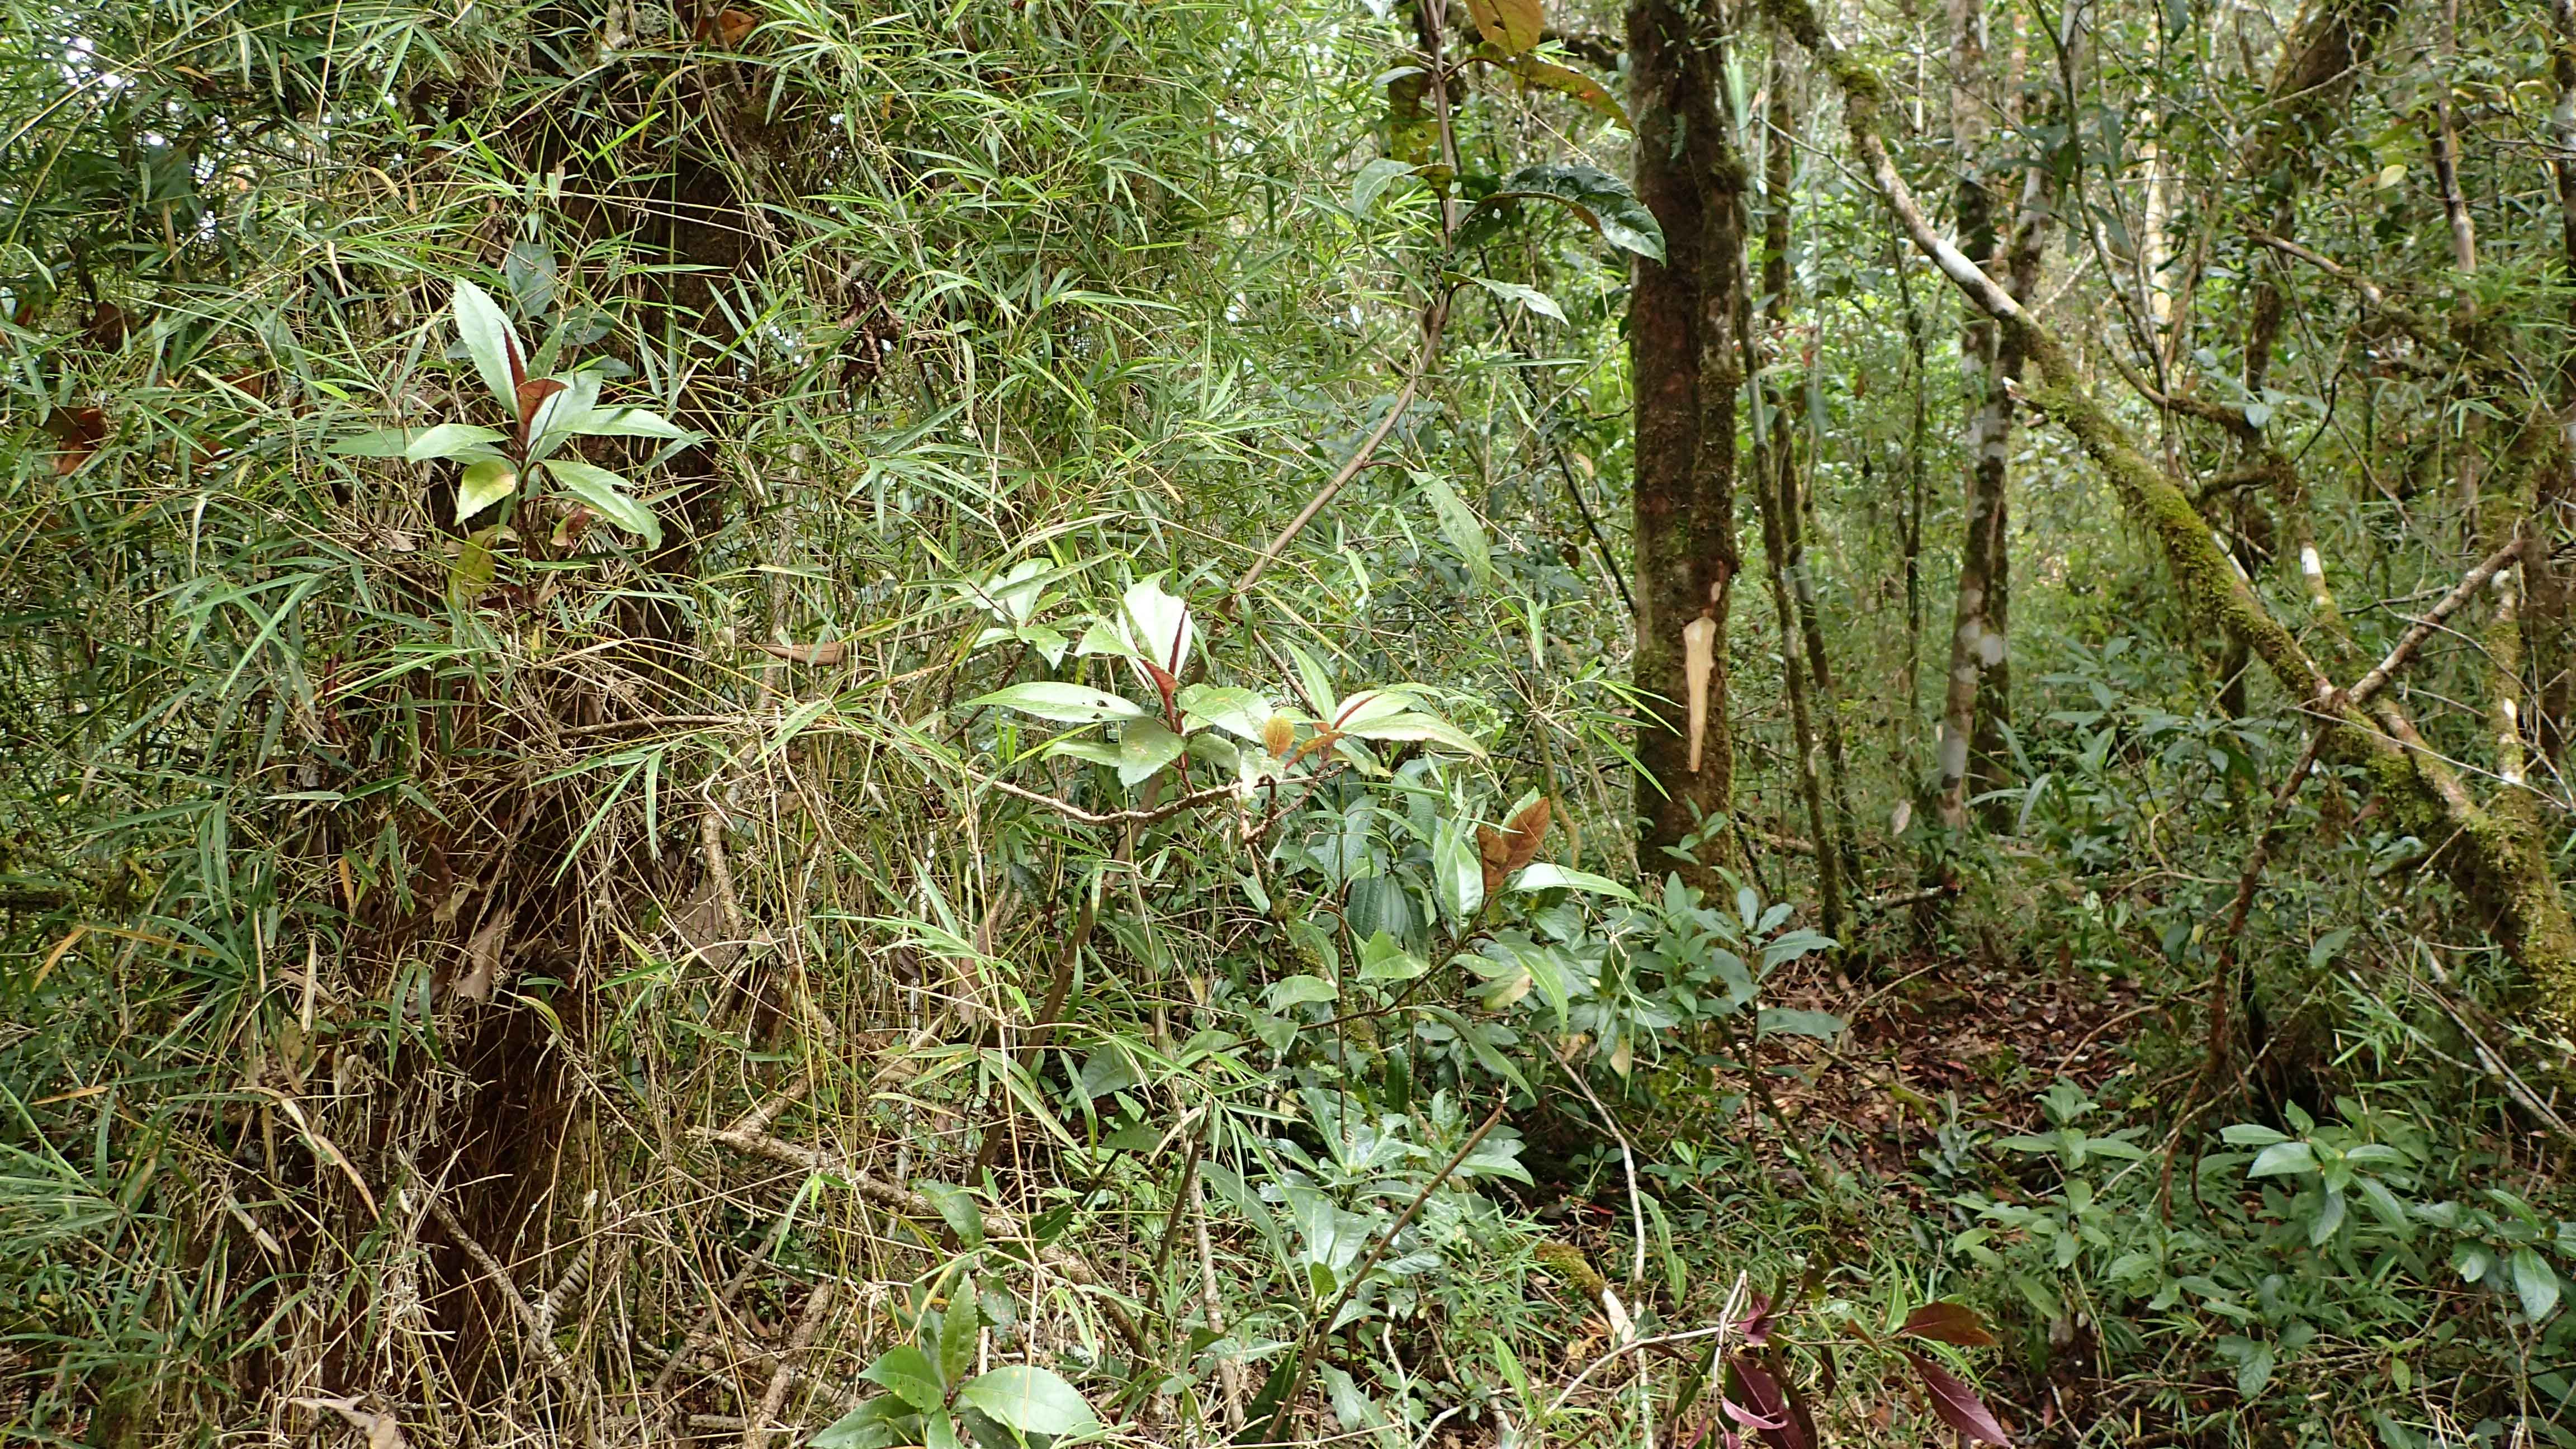 Image showing Bamboo forest with a climbing species of Nastus